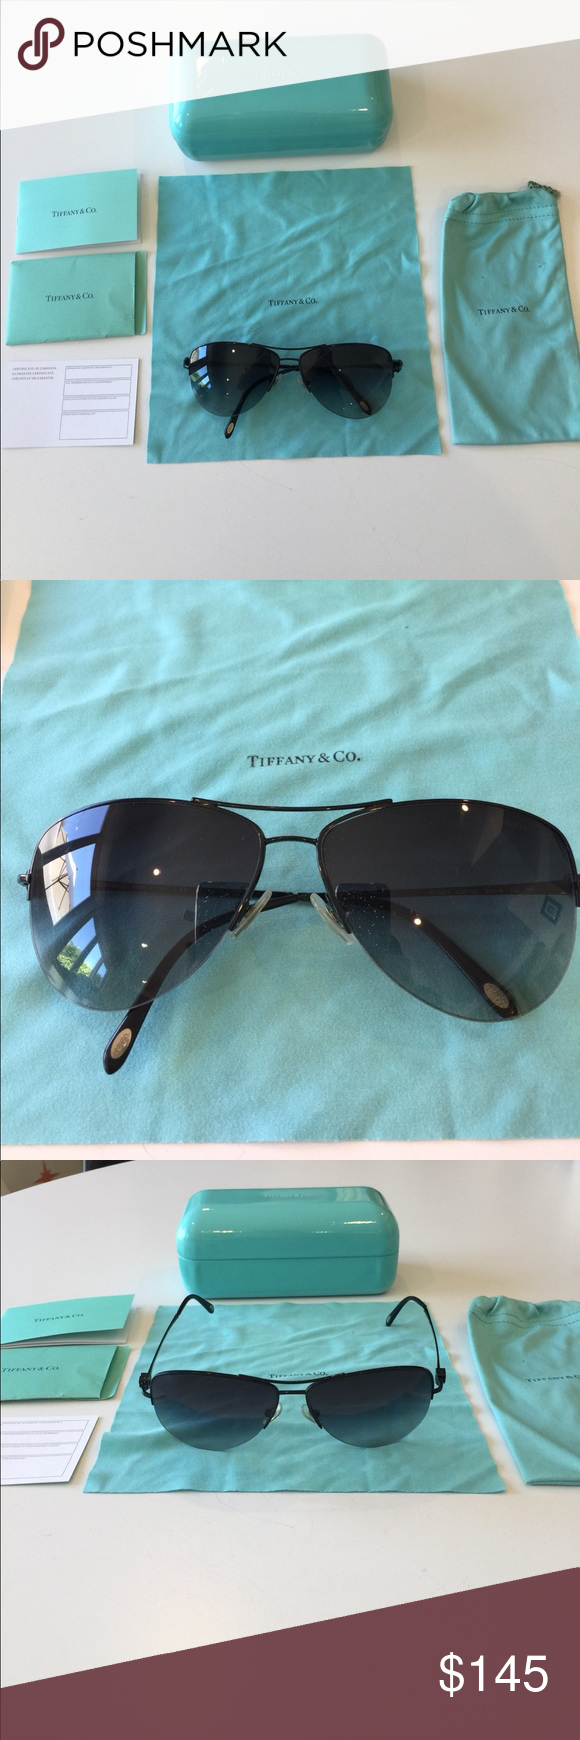 3482e0425615 Authen Tiffany   Co. black Aviator Sunglasses Women s Tiffany   Co TF 3021  black frame sunglasses. Gently used and in Excellent condition and comes  with ...